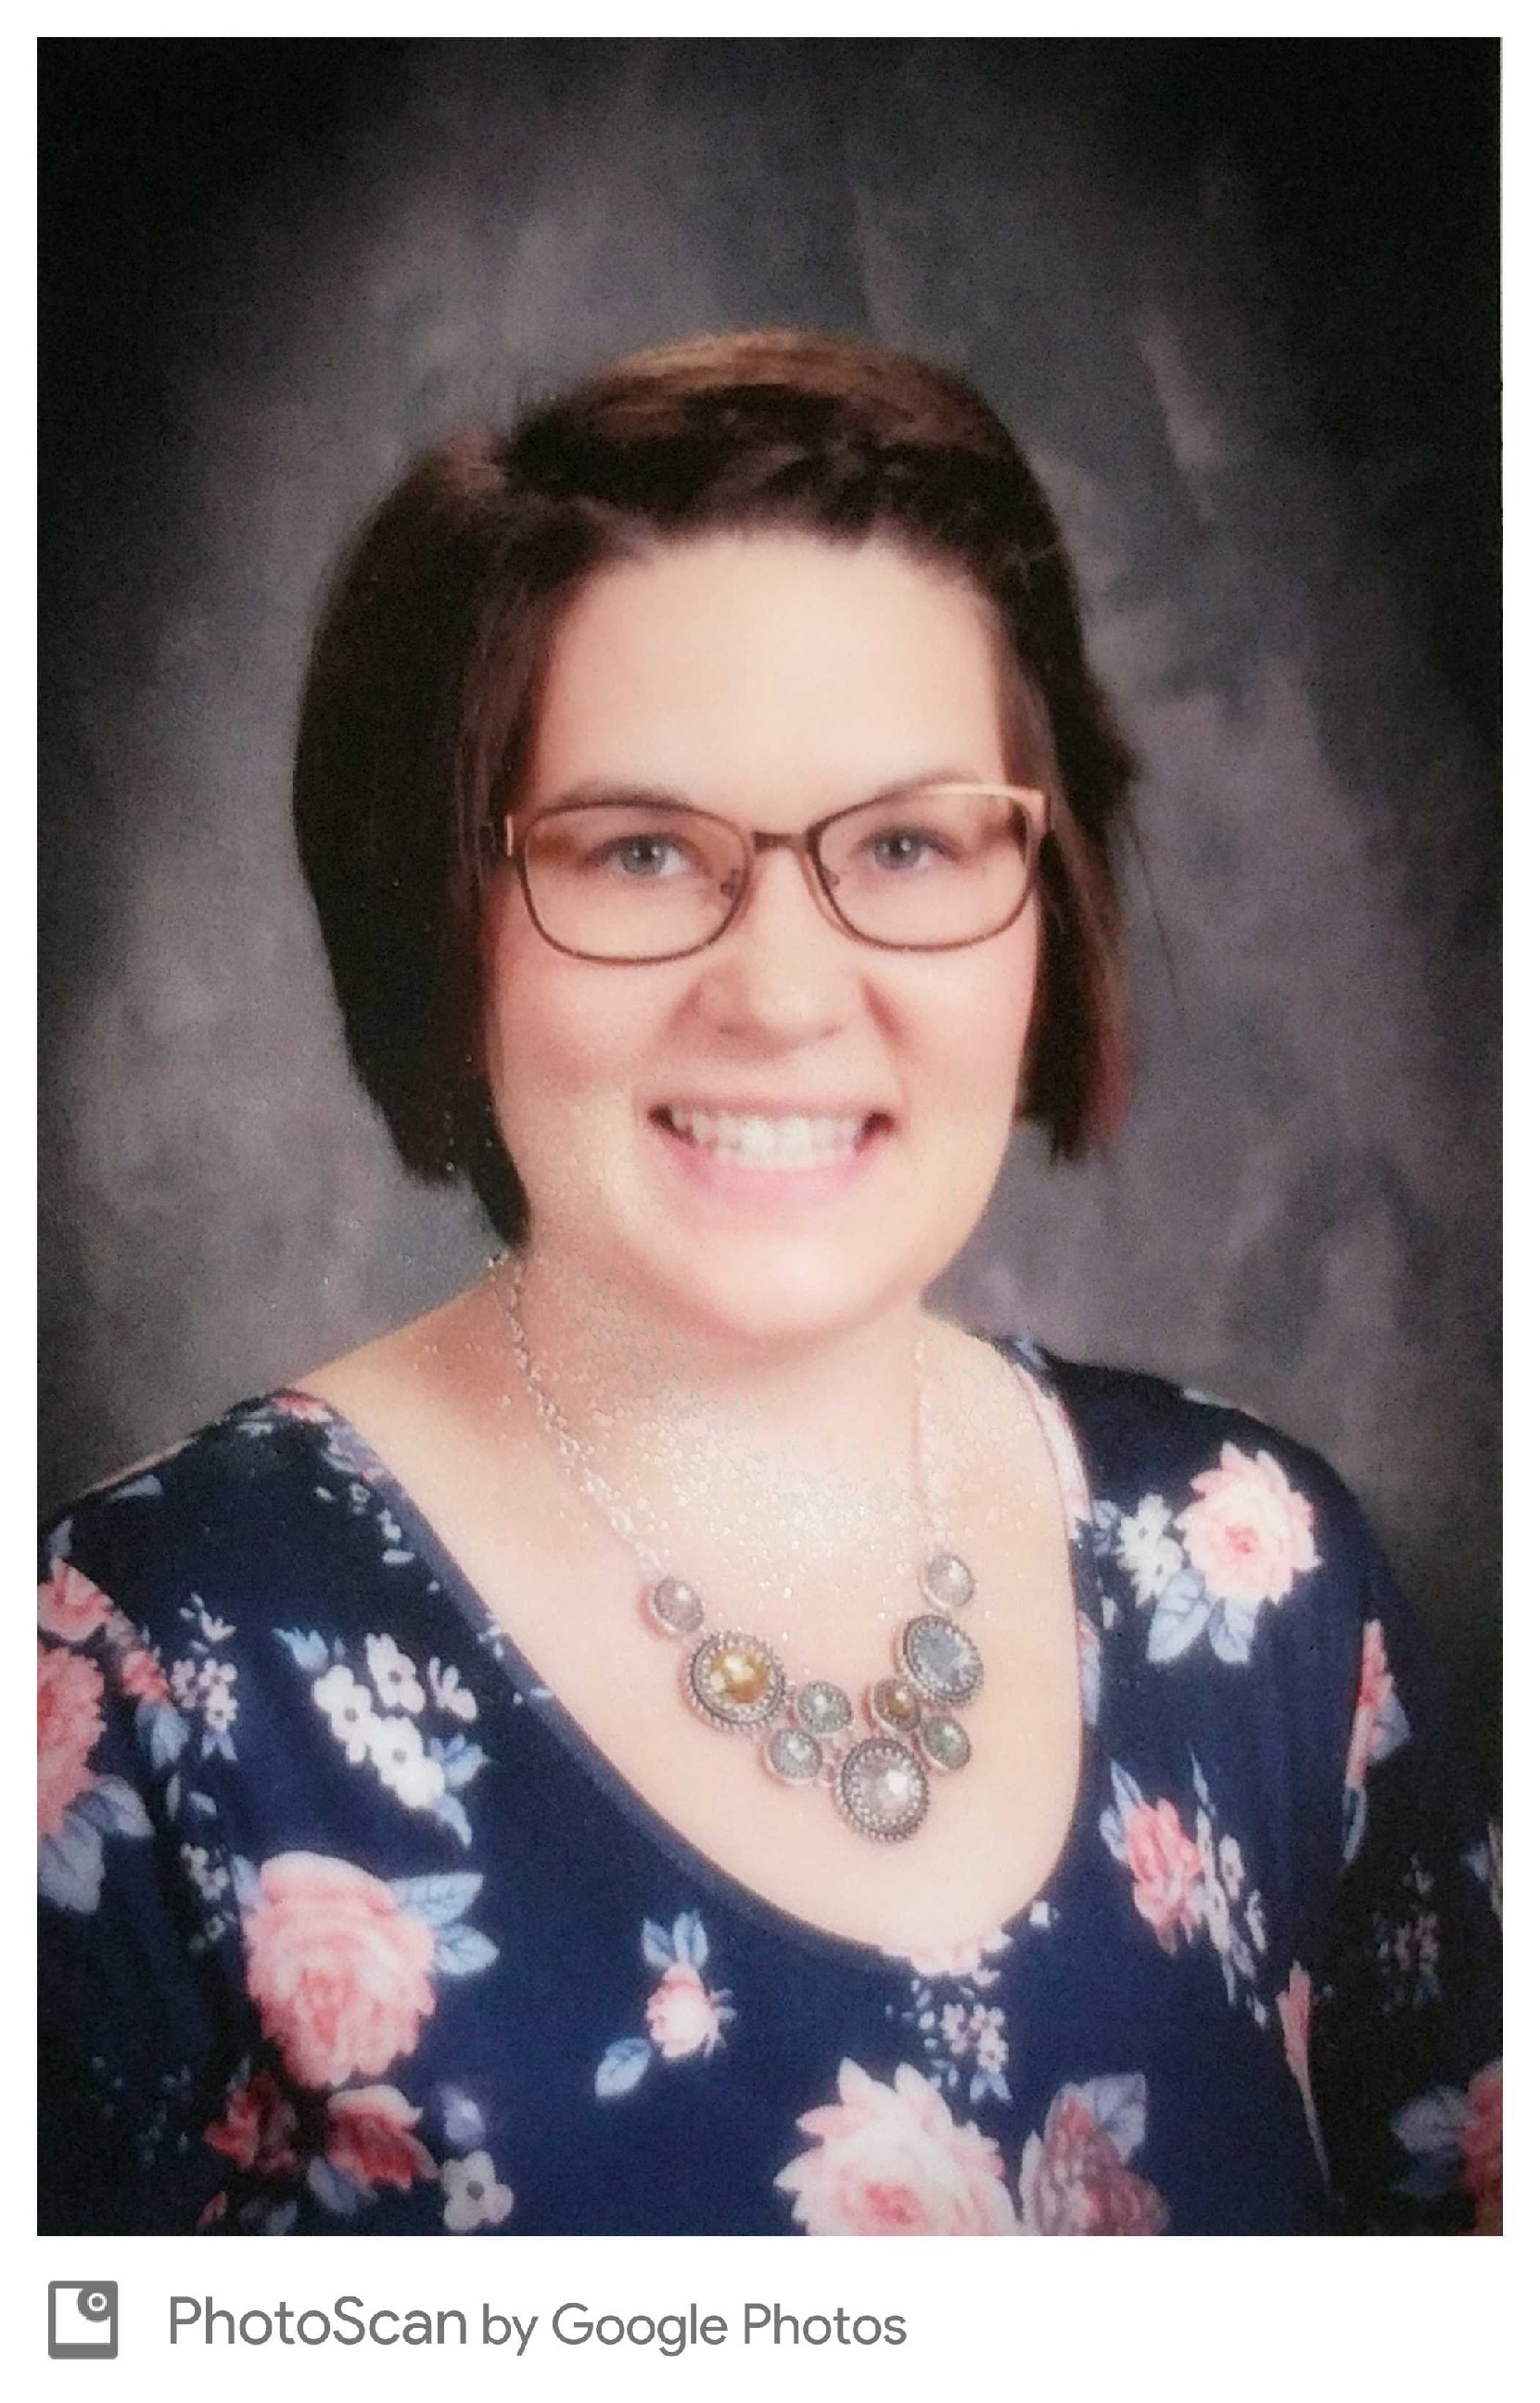 Hi! My name is Mrs. Megan Trautman. This will be my second year teaching second grade at Saint James. I have previously taught second grade for two years after graduating Northwest Missouri State University in 2015 with a Bachelors of Education in Elementary Education and Special Education. My husband, Andrew, and I have two beautiful daughters, Lillian and Parker.